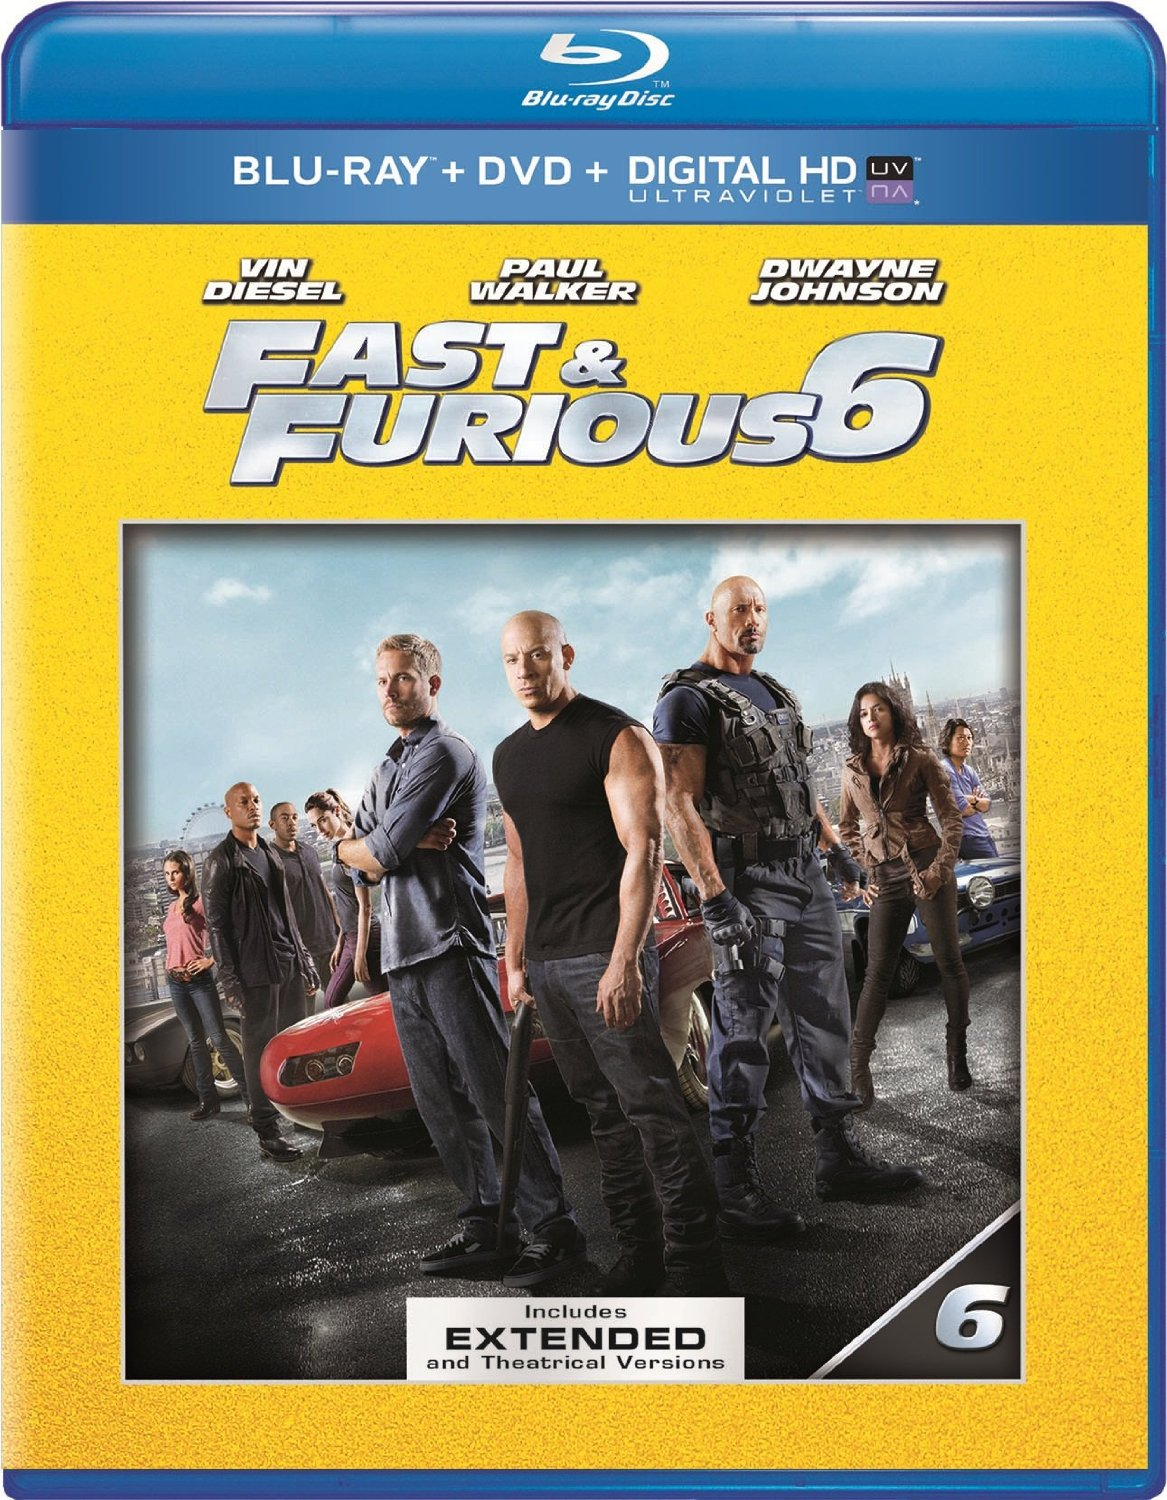 amazon fast furious 6 extended edition blu ray dvd digital hd ultraviolet 9 the. Black Bedroom Furniture Sets. Home Design Ideas